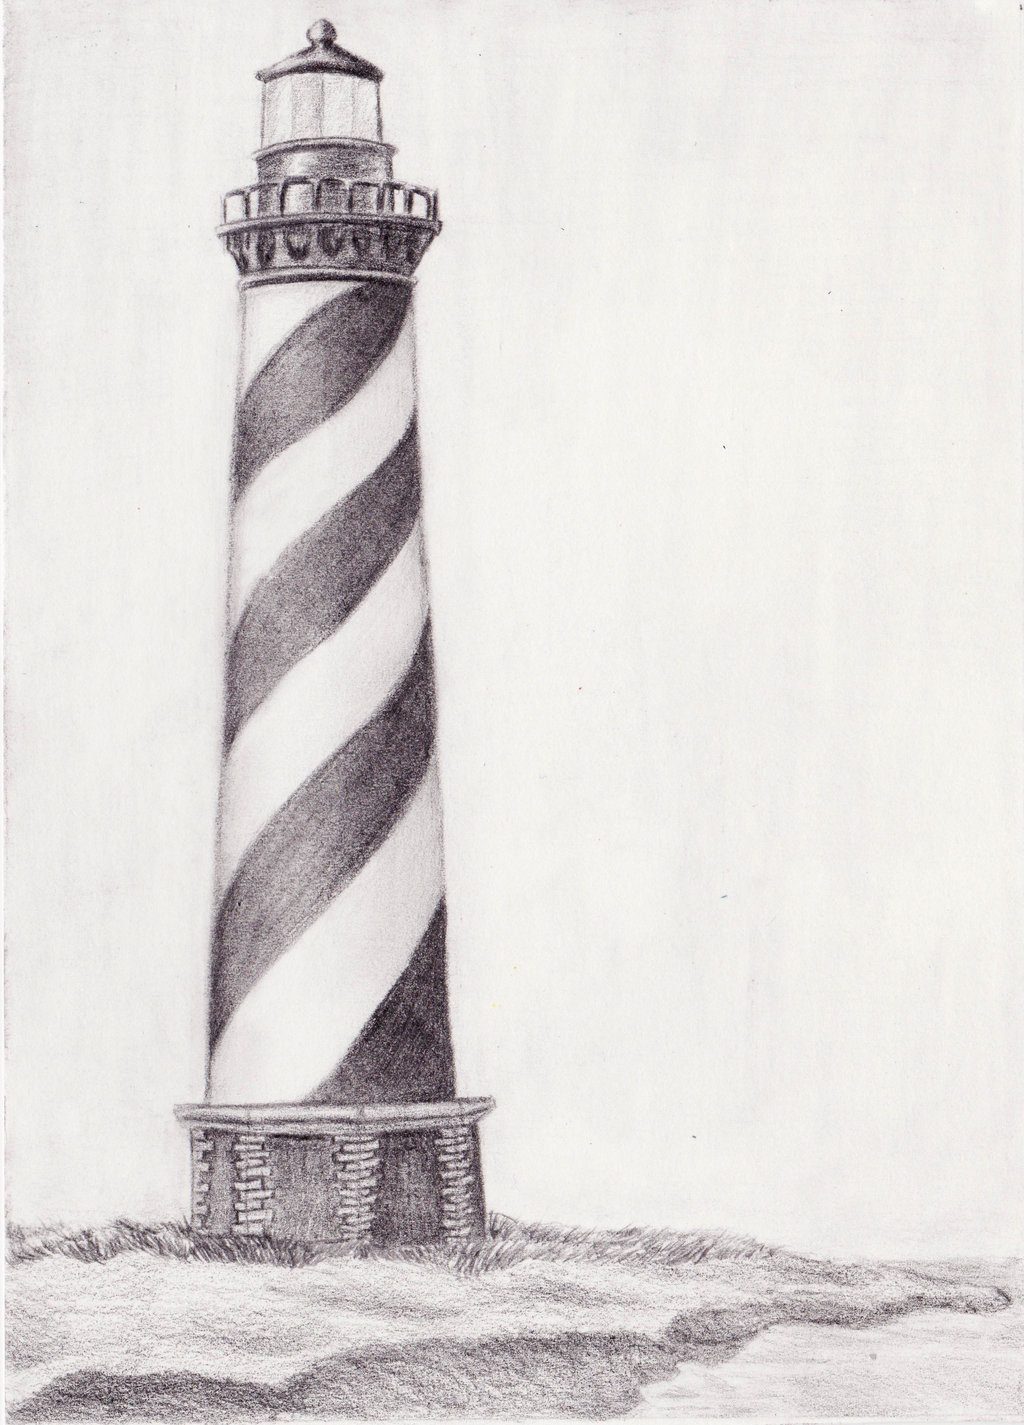 Drawn lighthouse #5